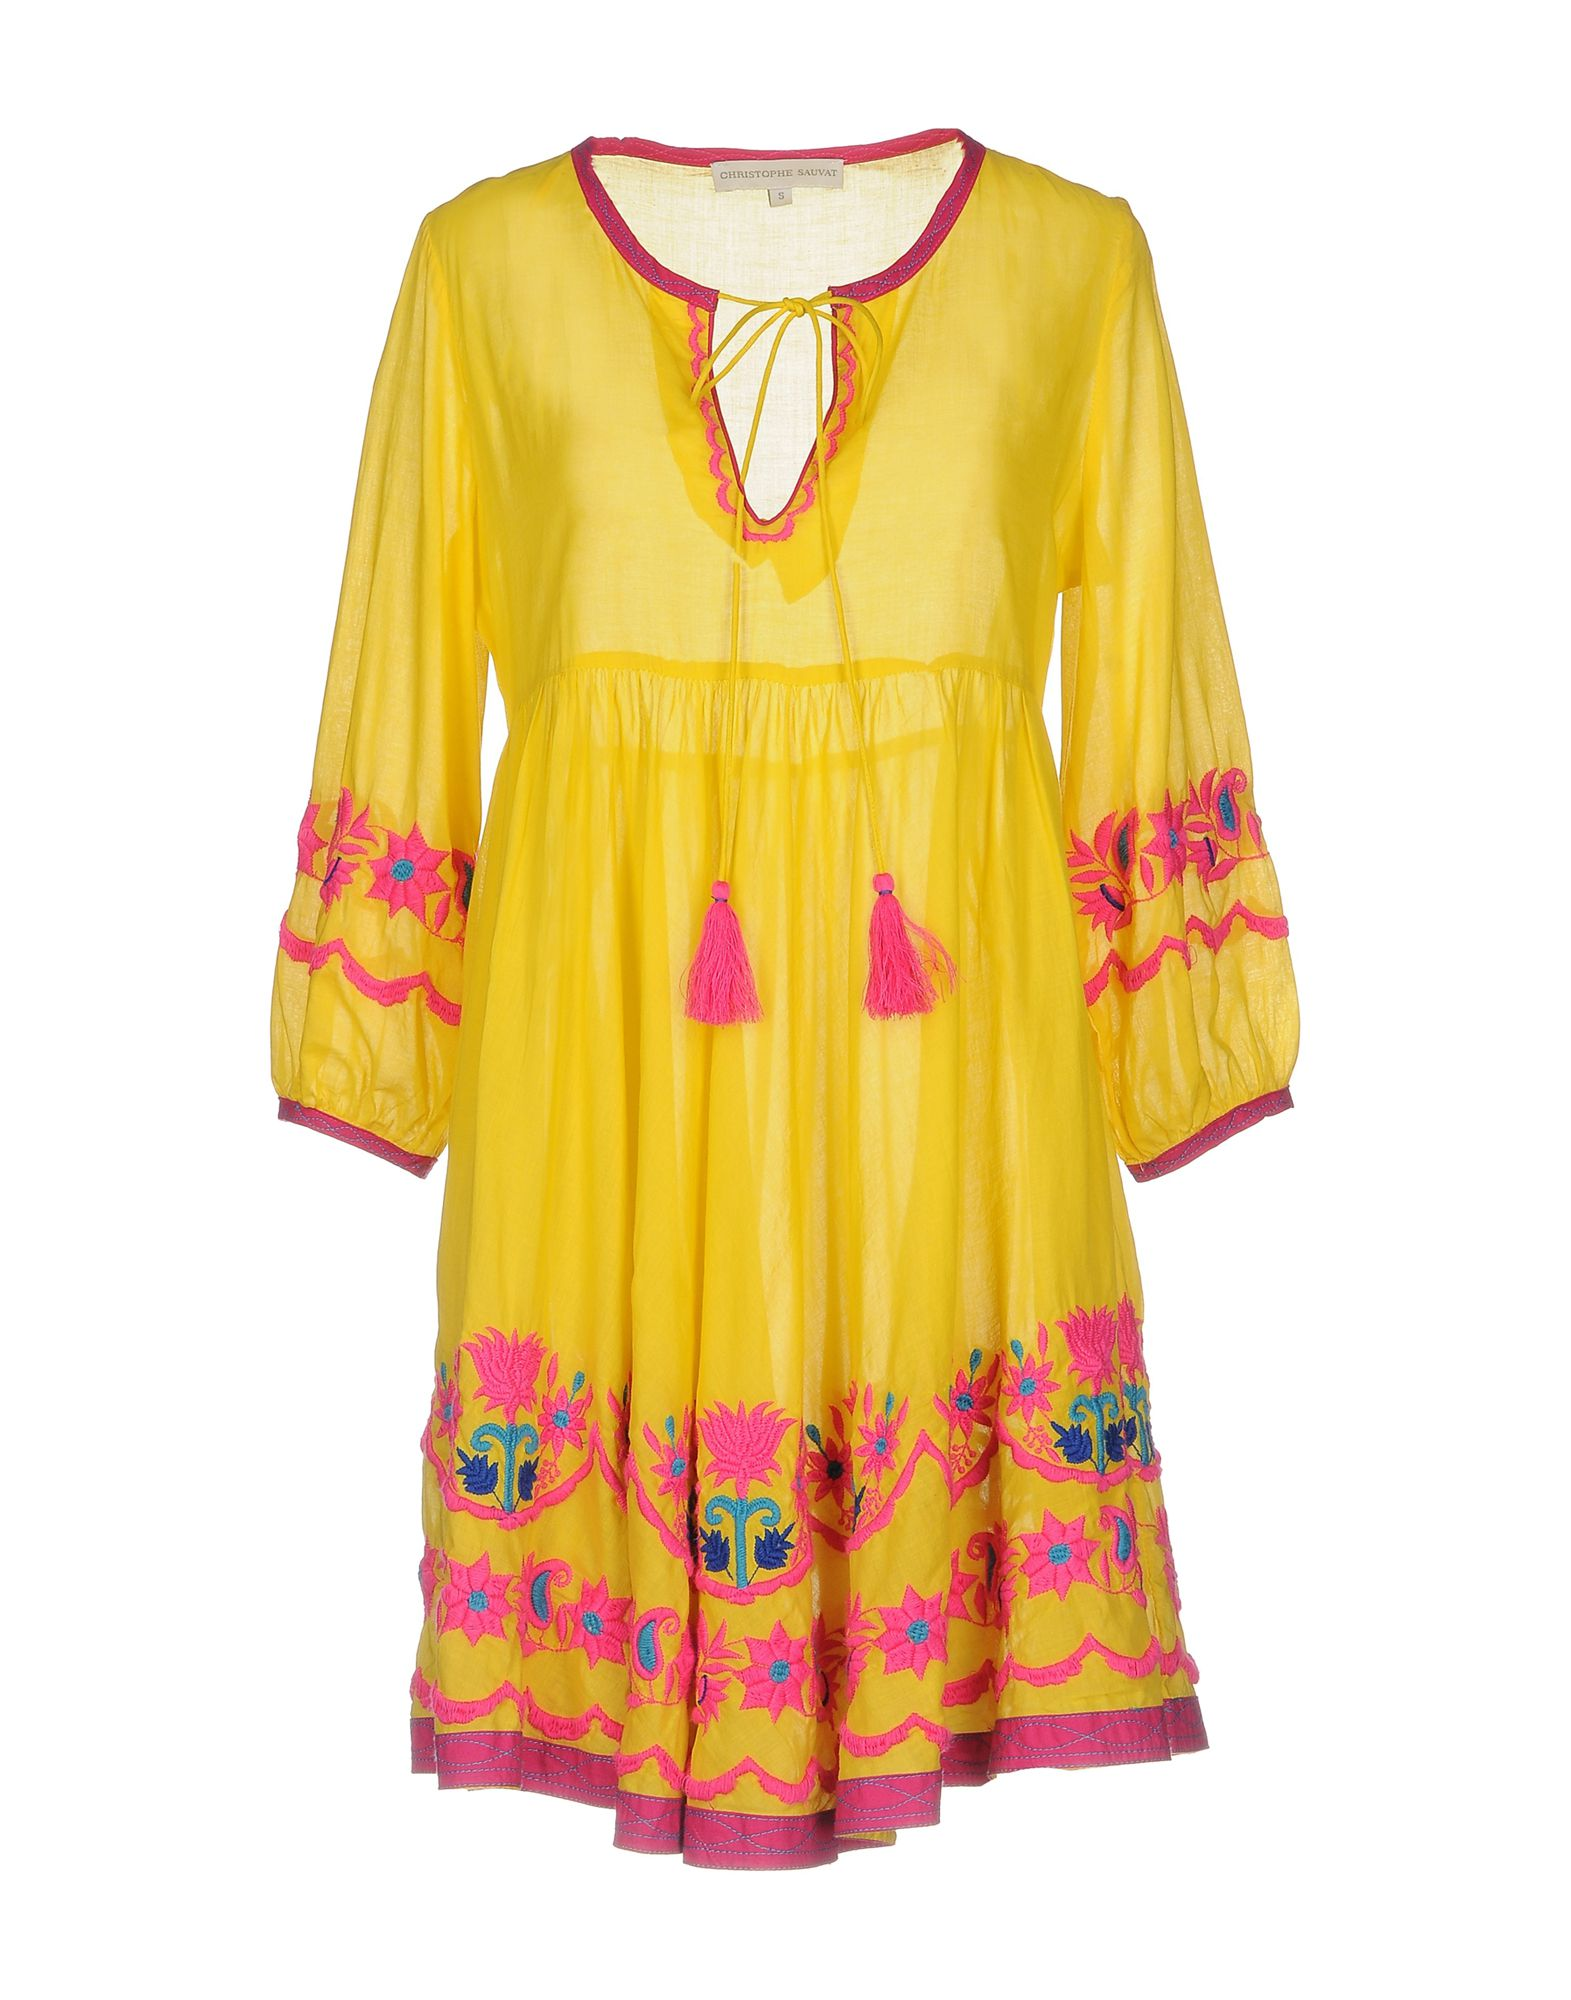 CHRISTOPHE SAUVAT COLLECTION Christopher Sauvat Cordoba Embroidered Tunic Dress in Nocolor